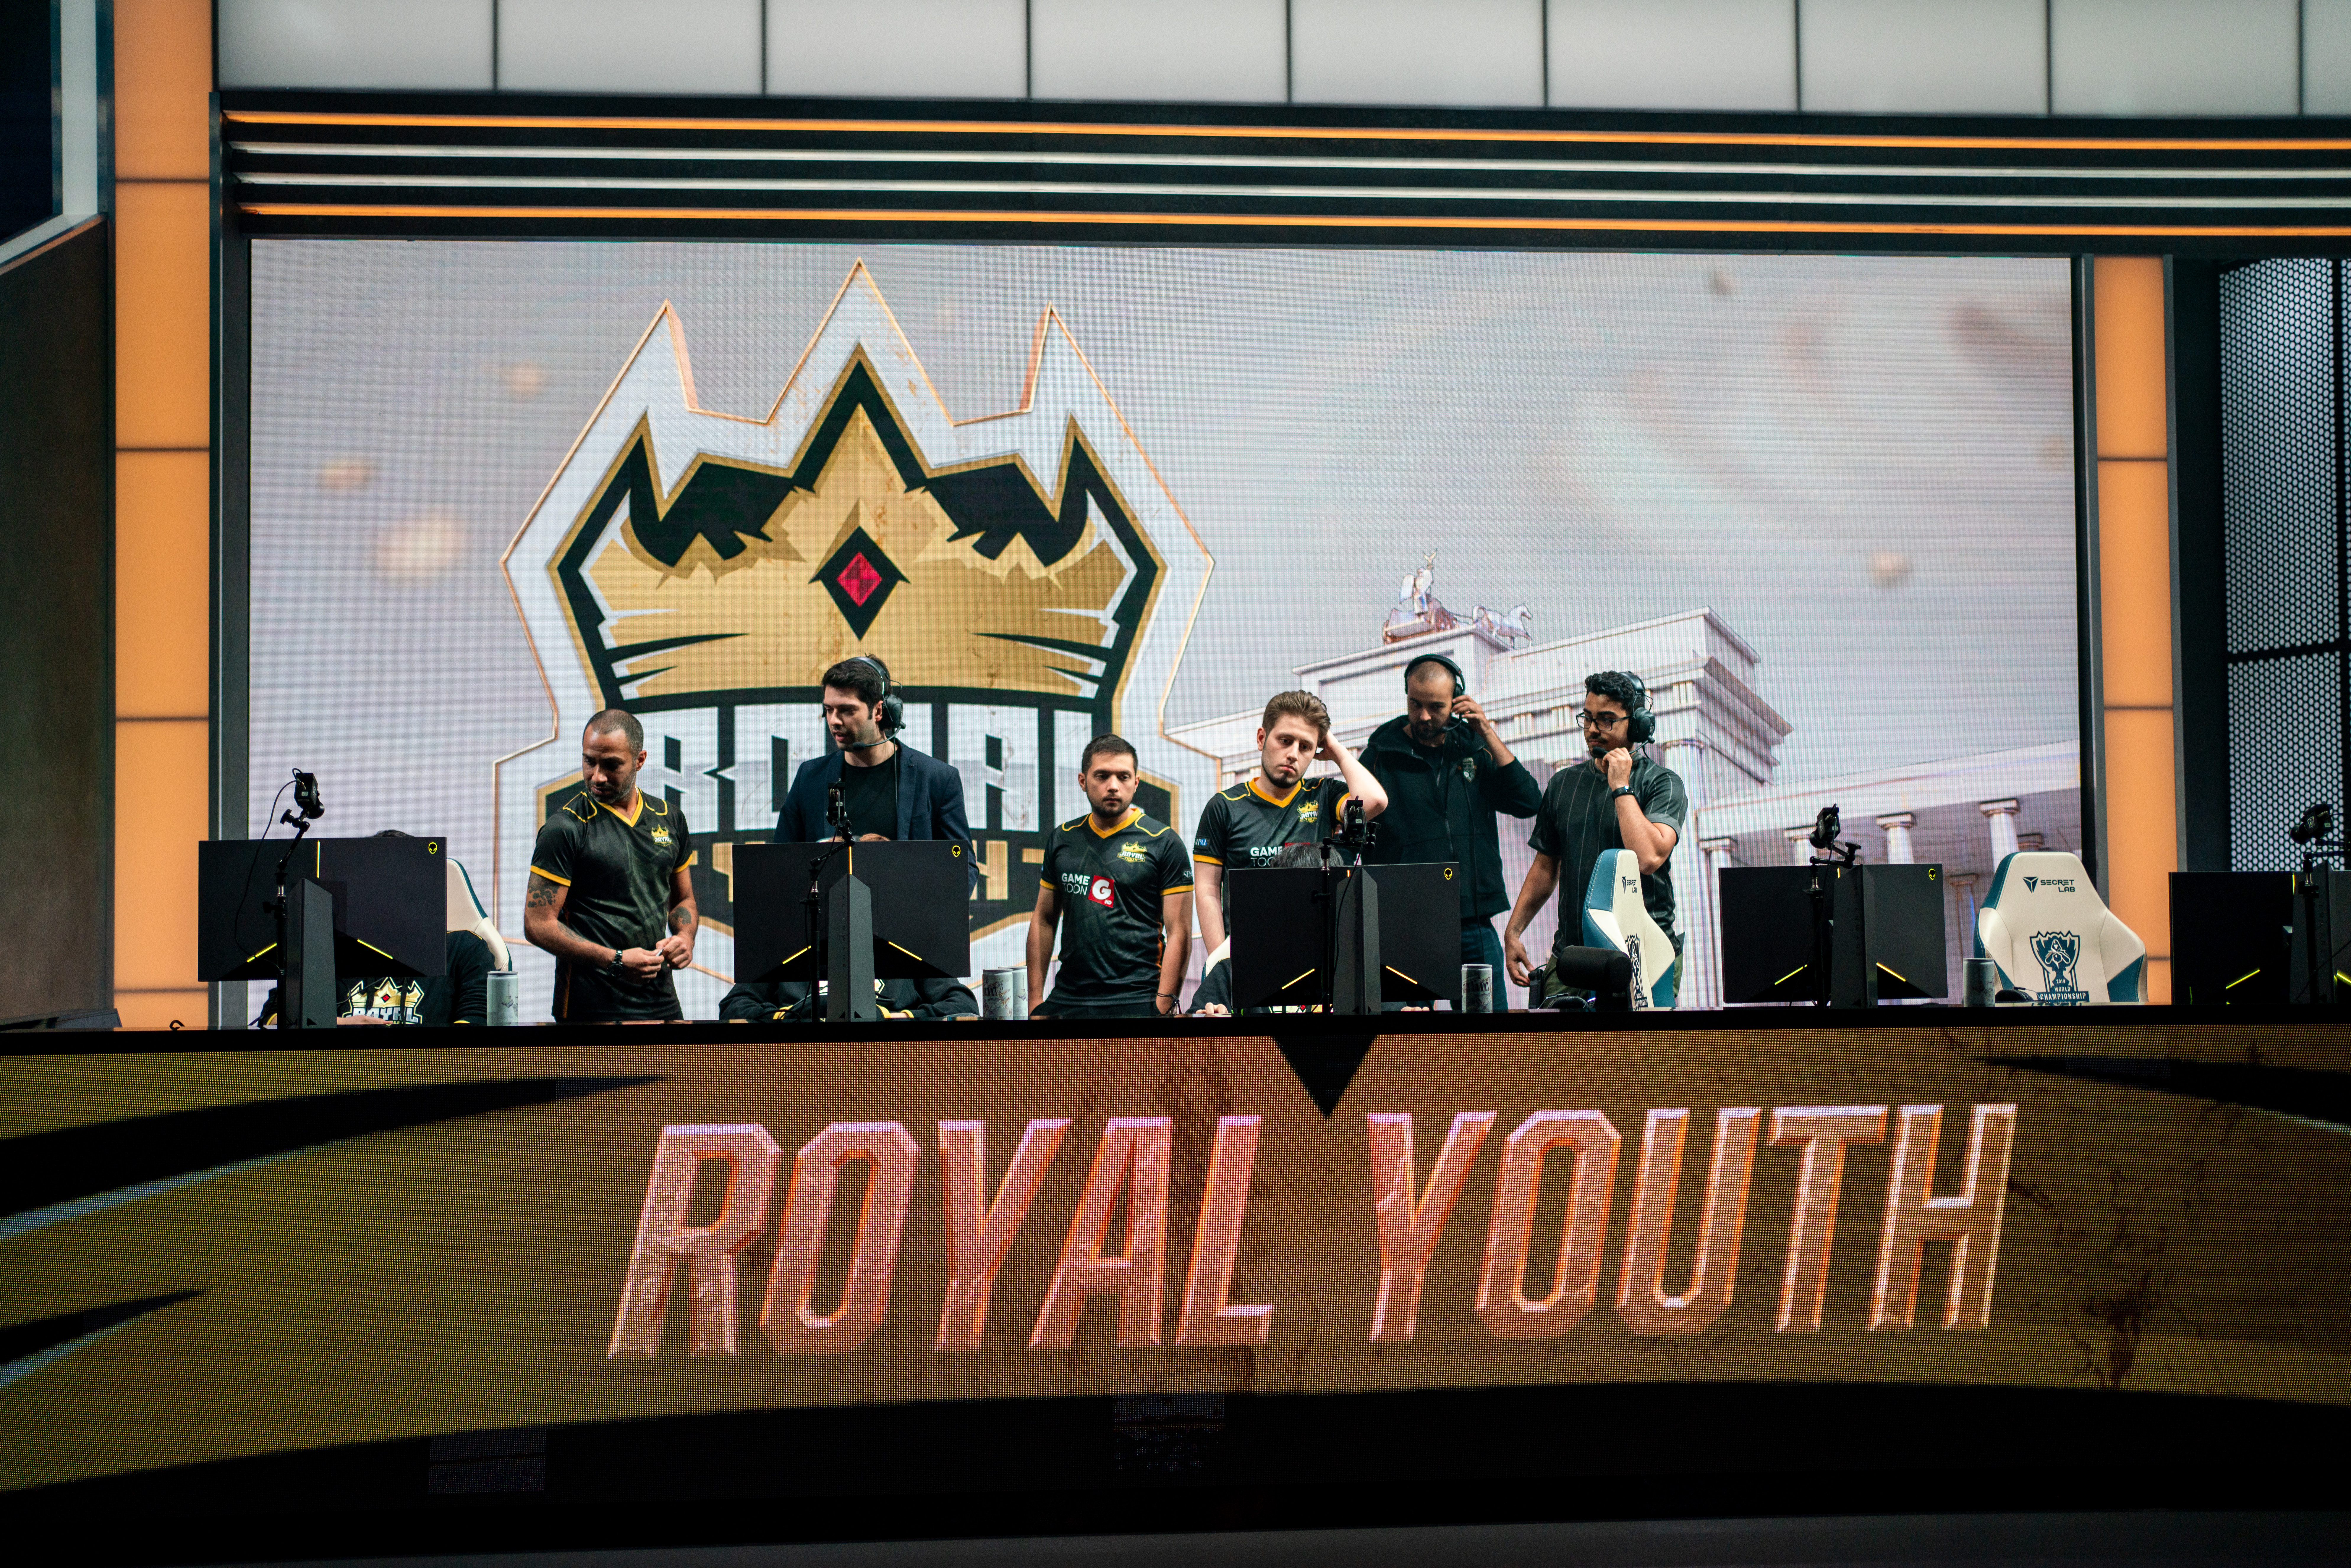 Royal Youth, Worlds 2019'a Veda Etti